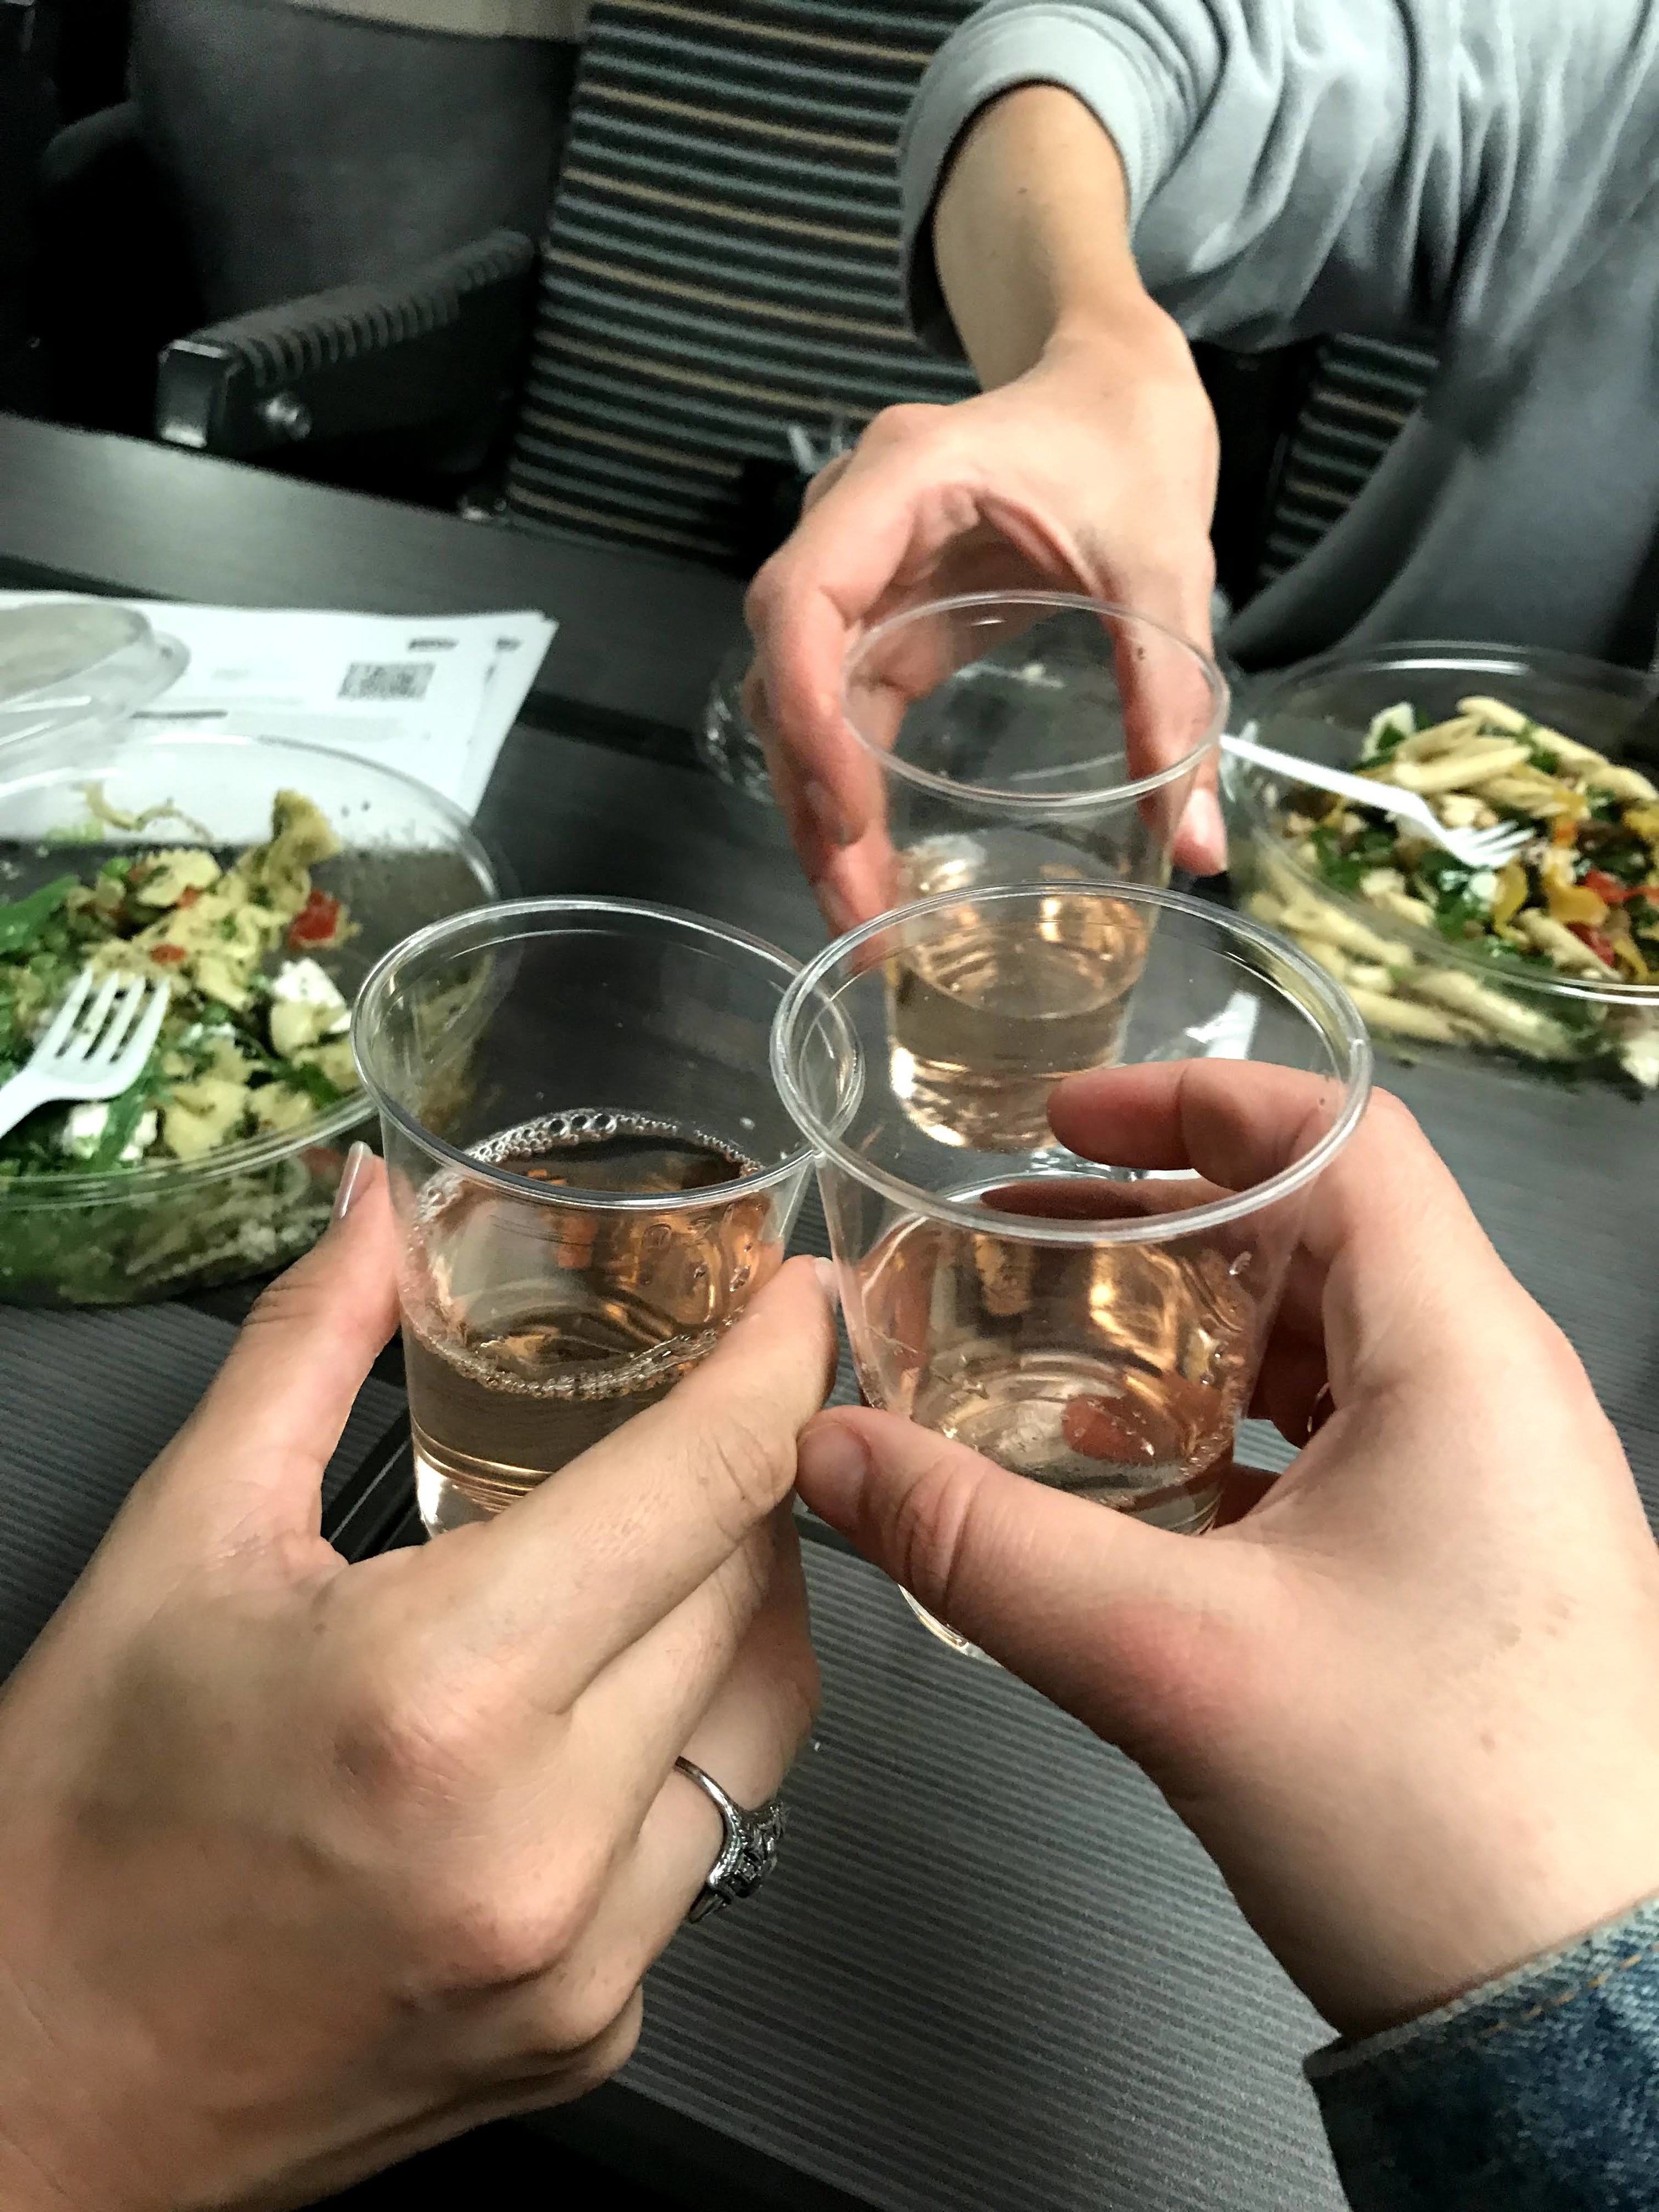 The hands of three people clinking plastic cups of wine on the train